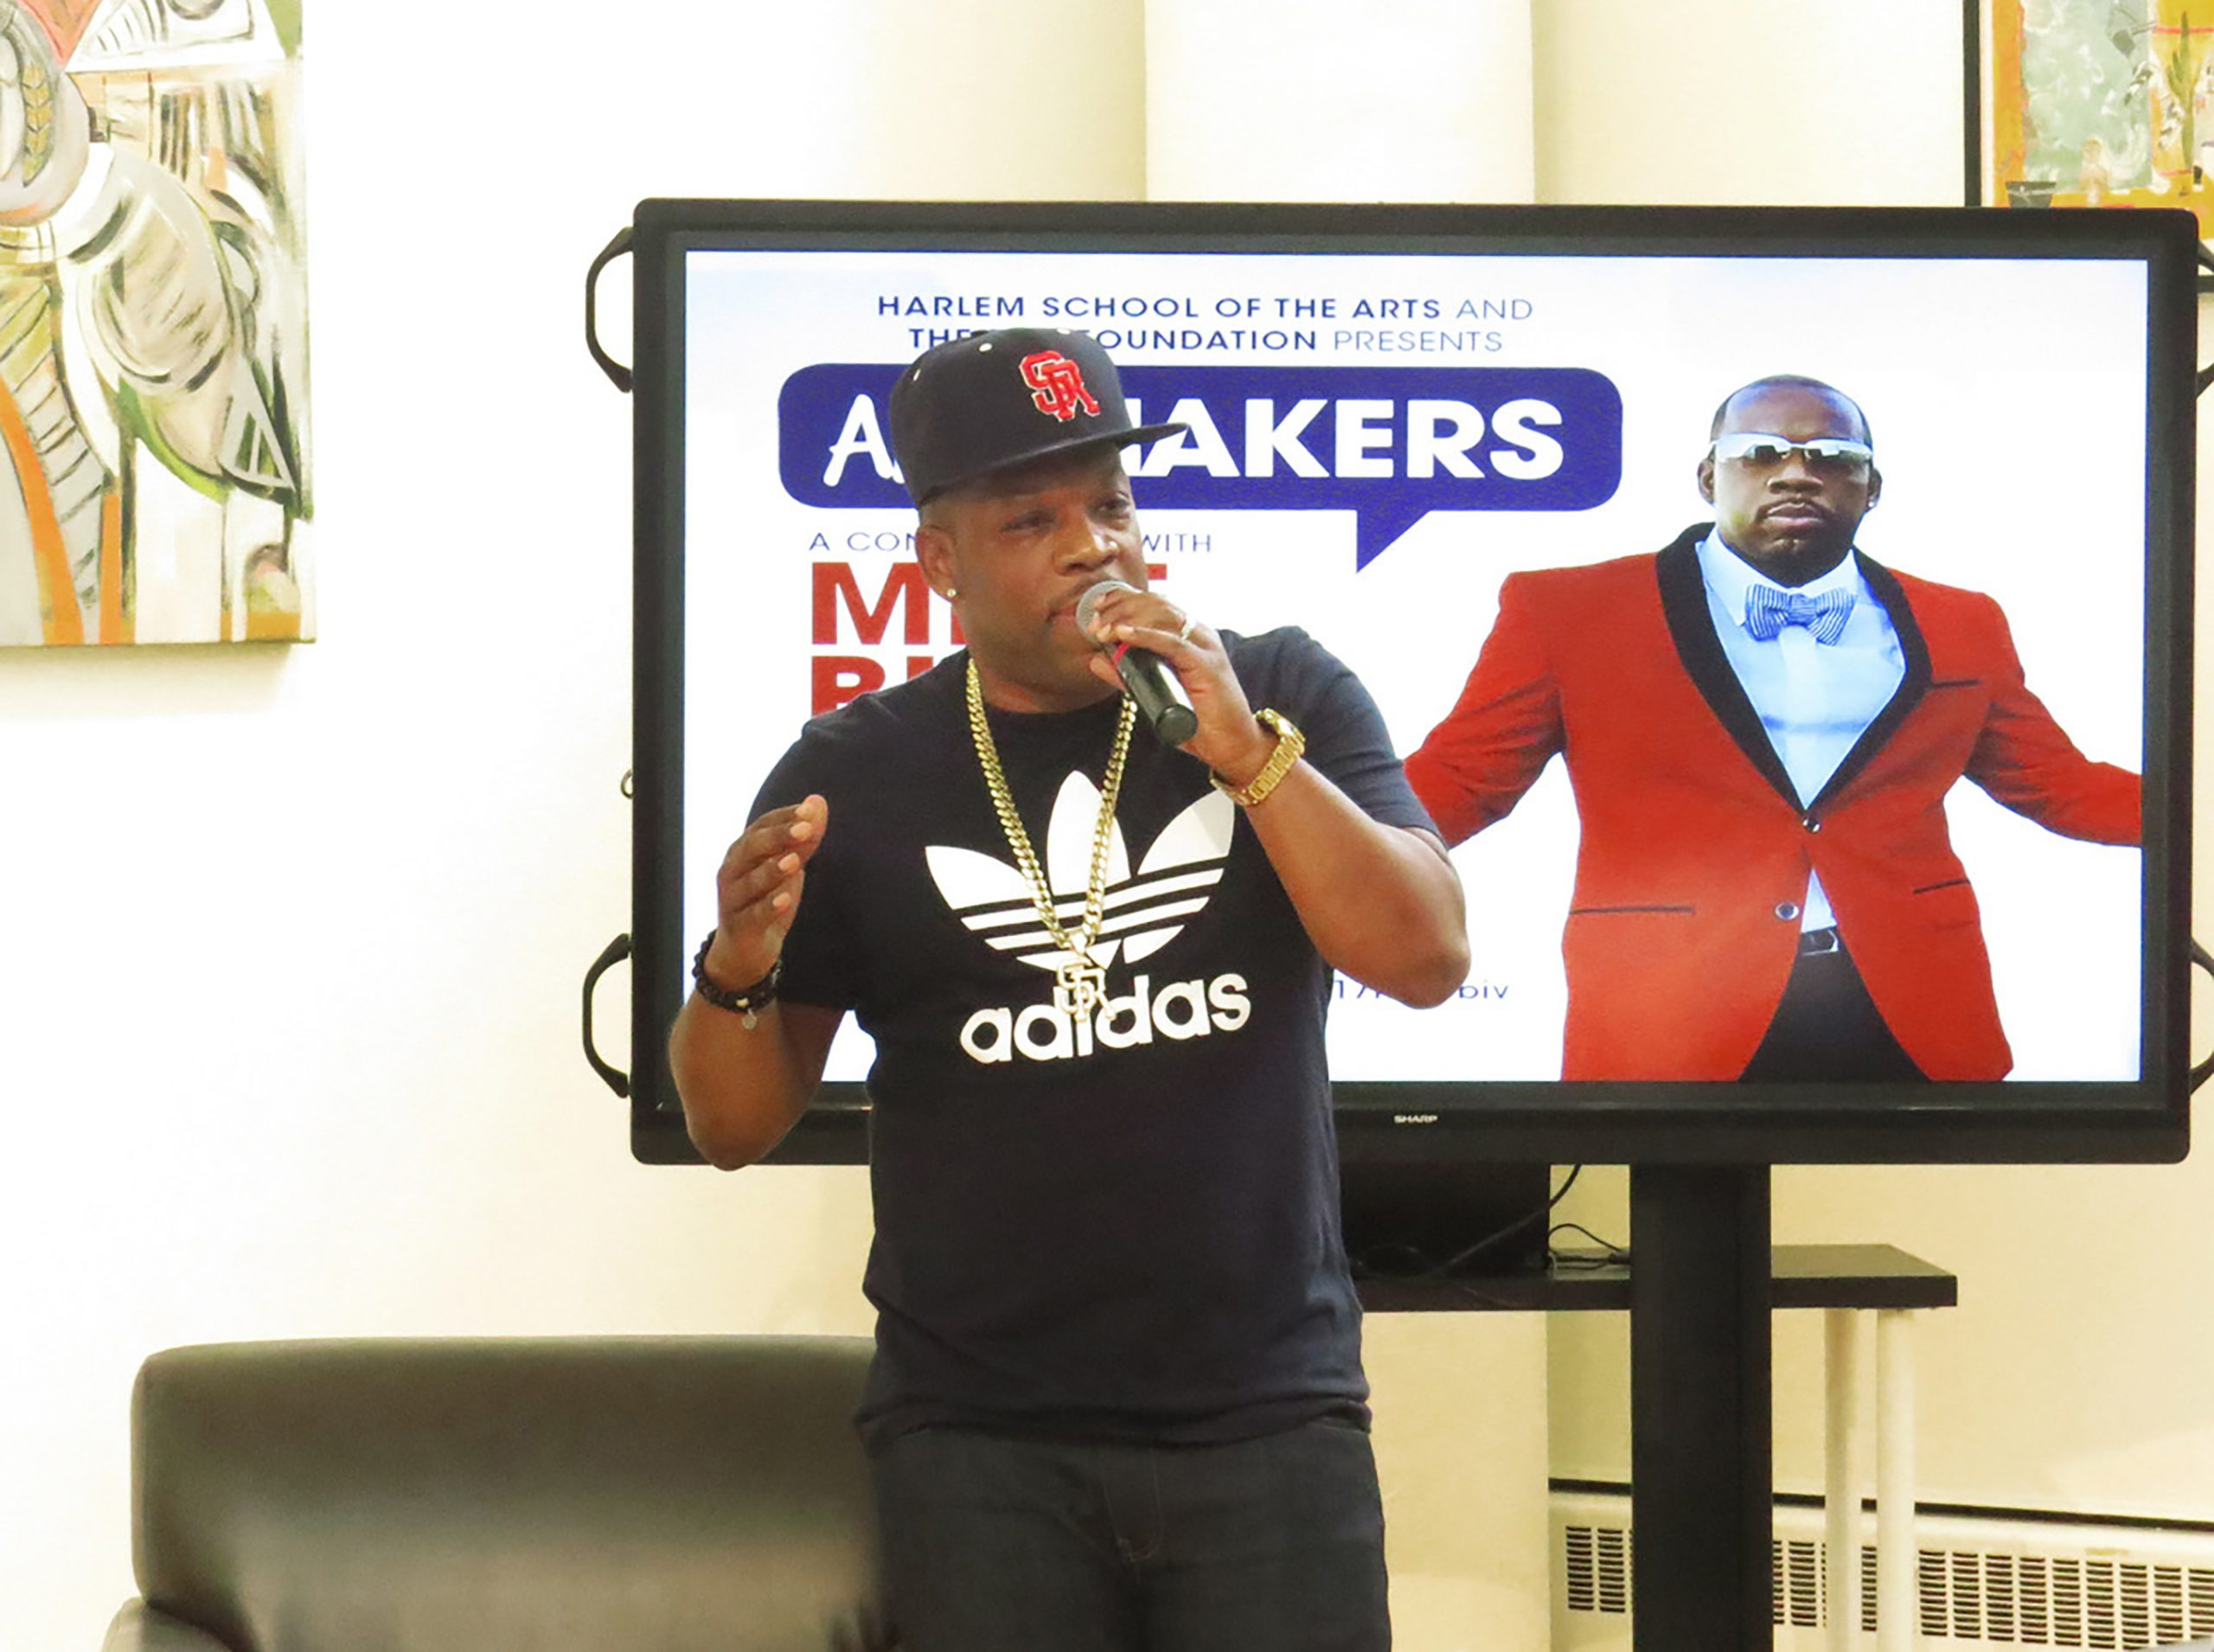 Michael Bivins gives back to the youth at Harlem School of the Arts